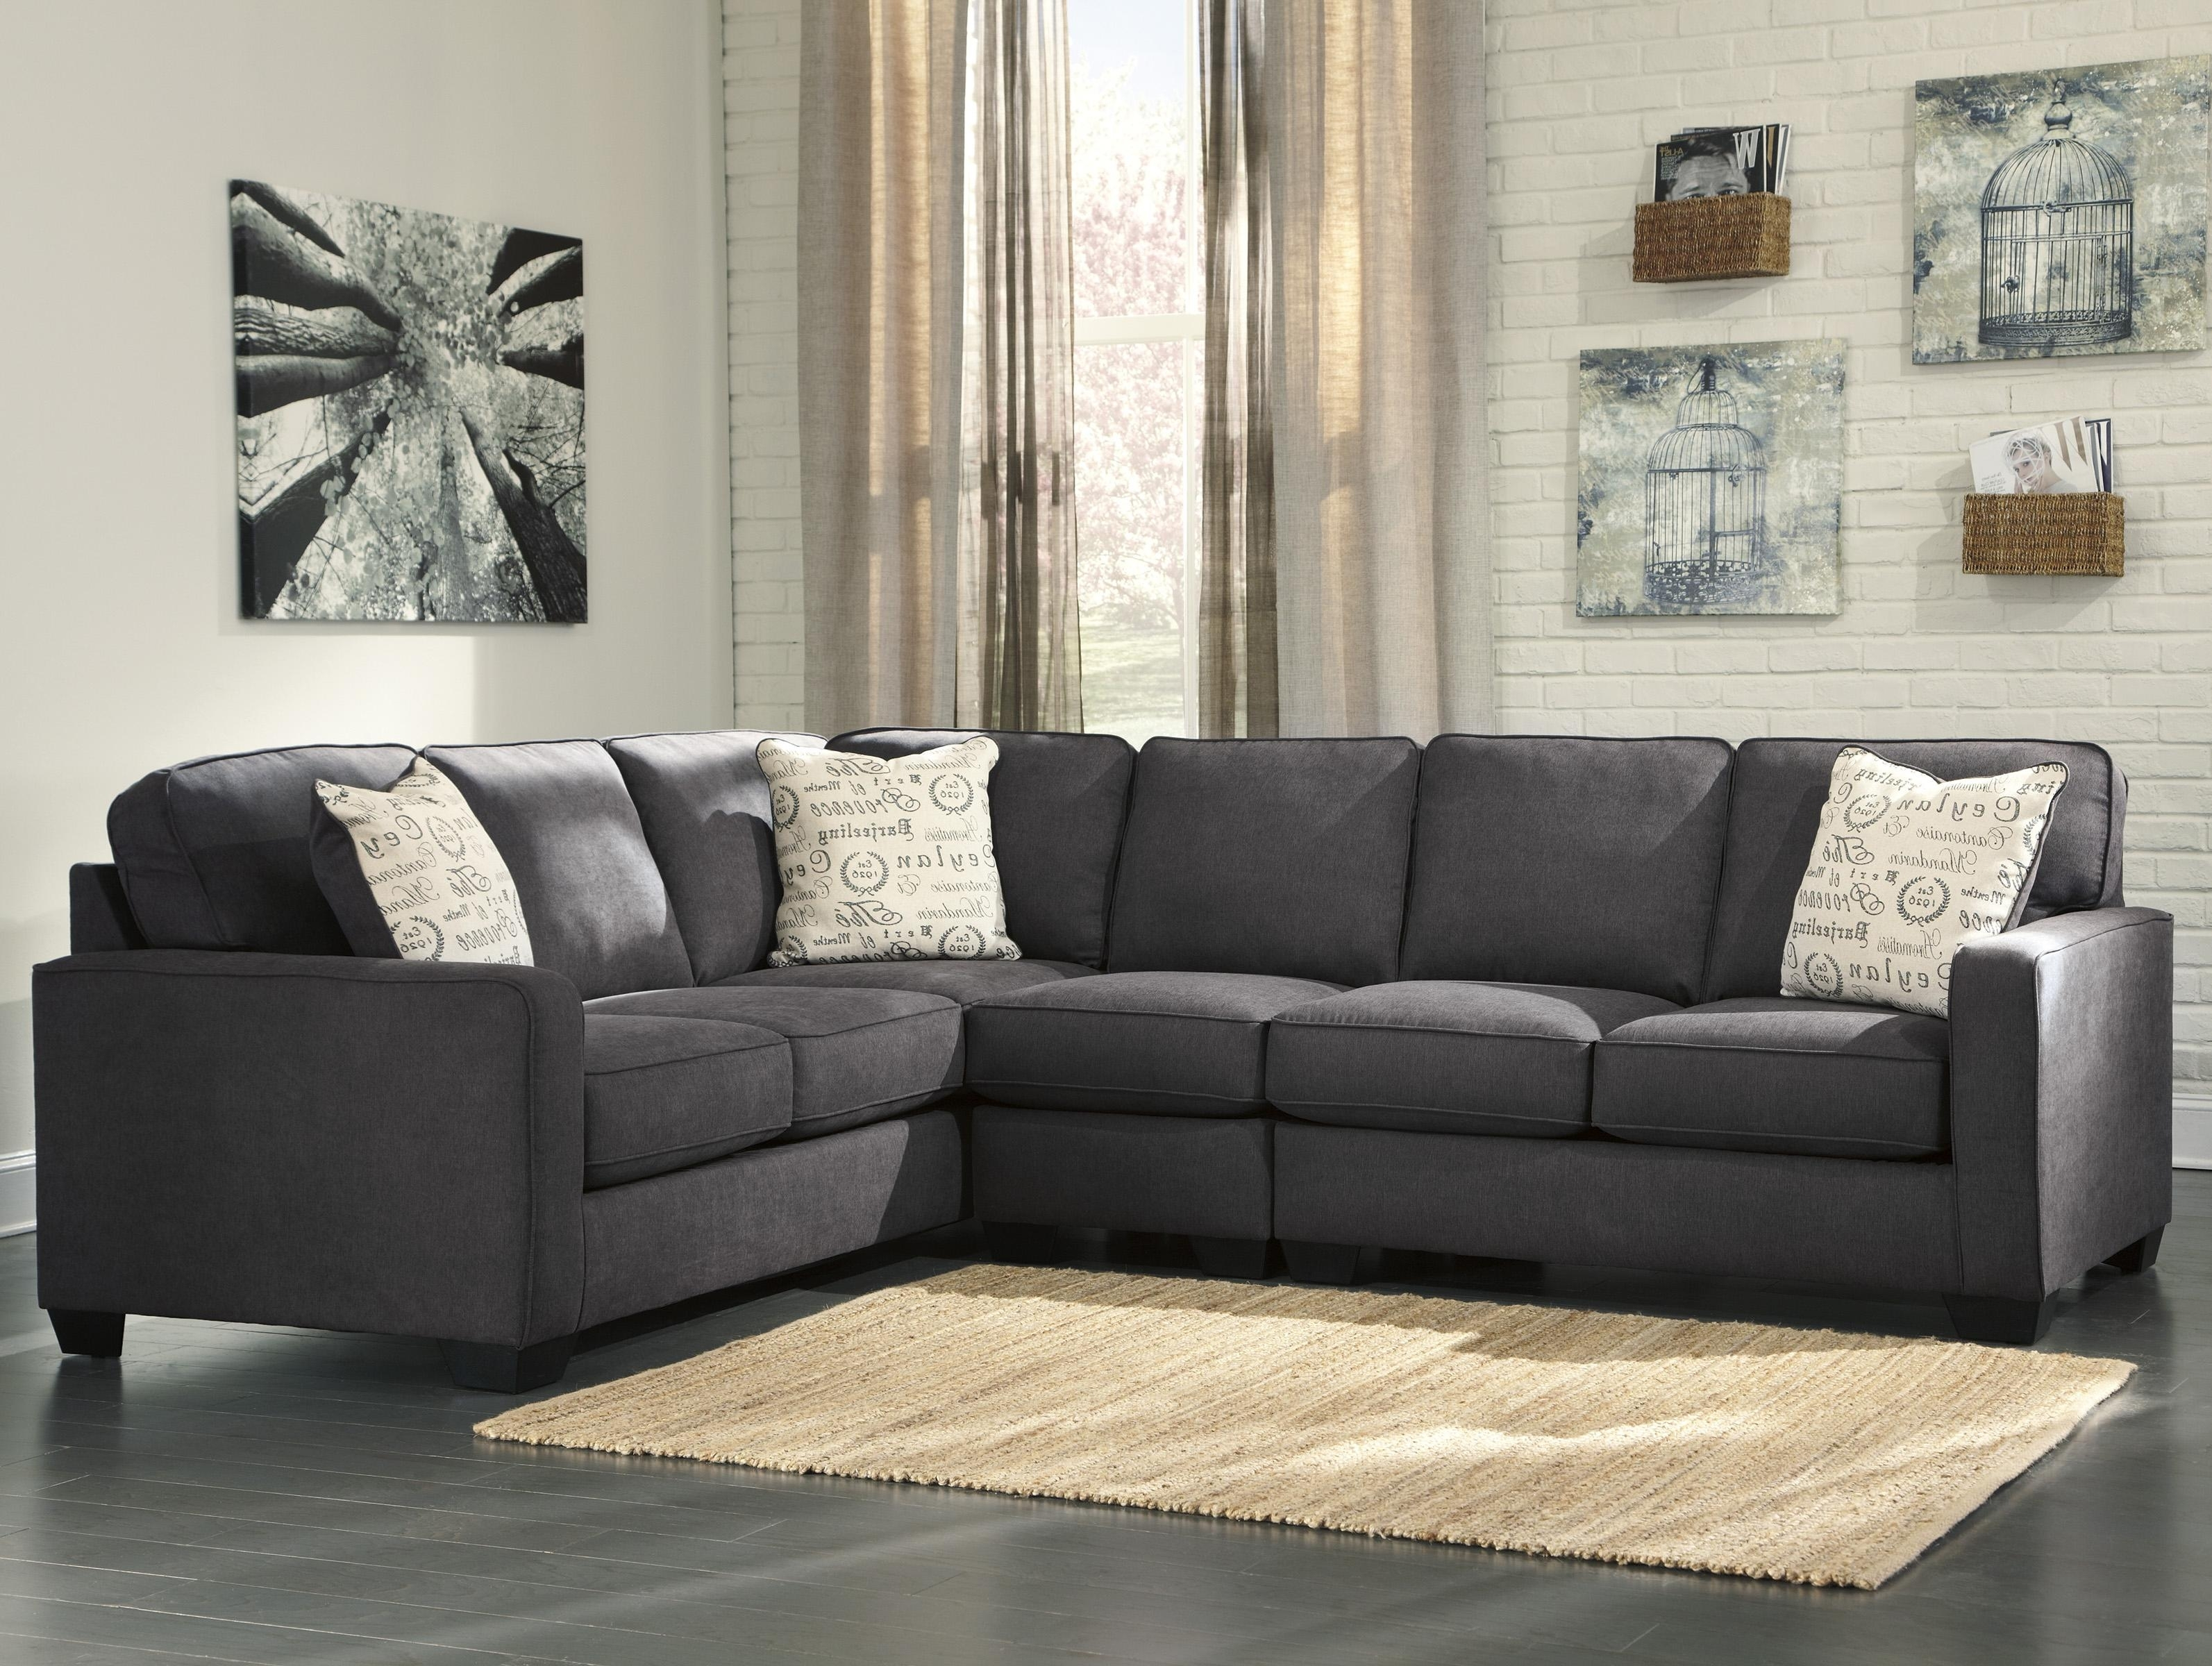 Ashley Signature Design Alenya - Charcoal 3-Piece Sectional With with Sectional Sofas At Ashley (Image 8 of 15)